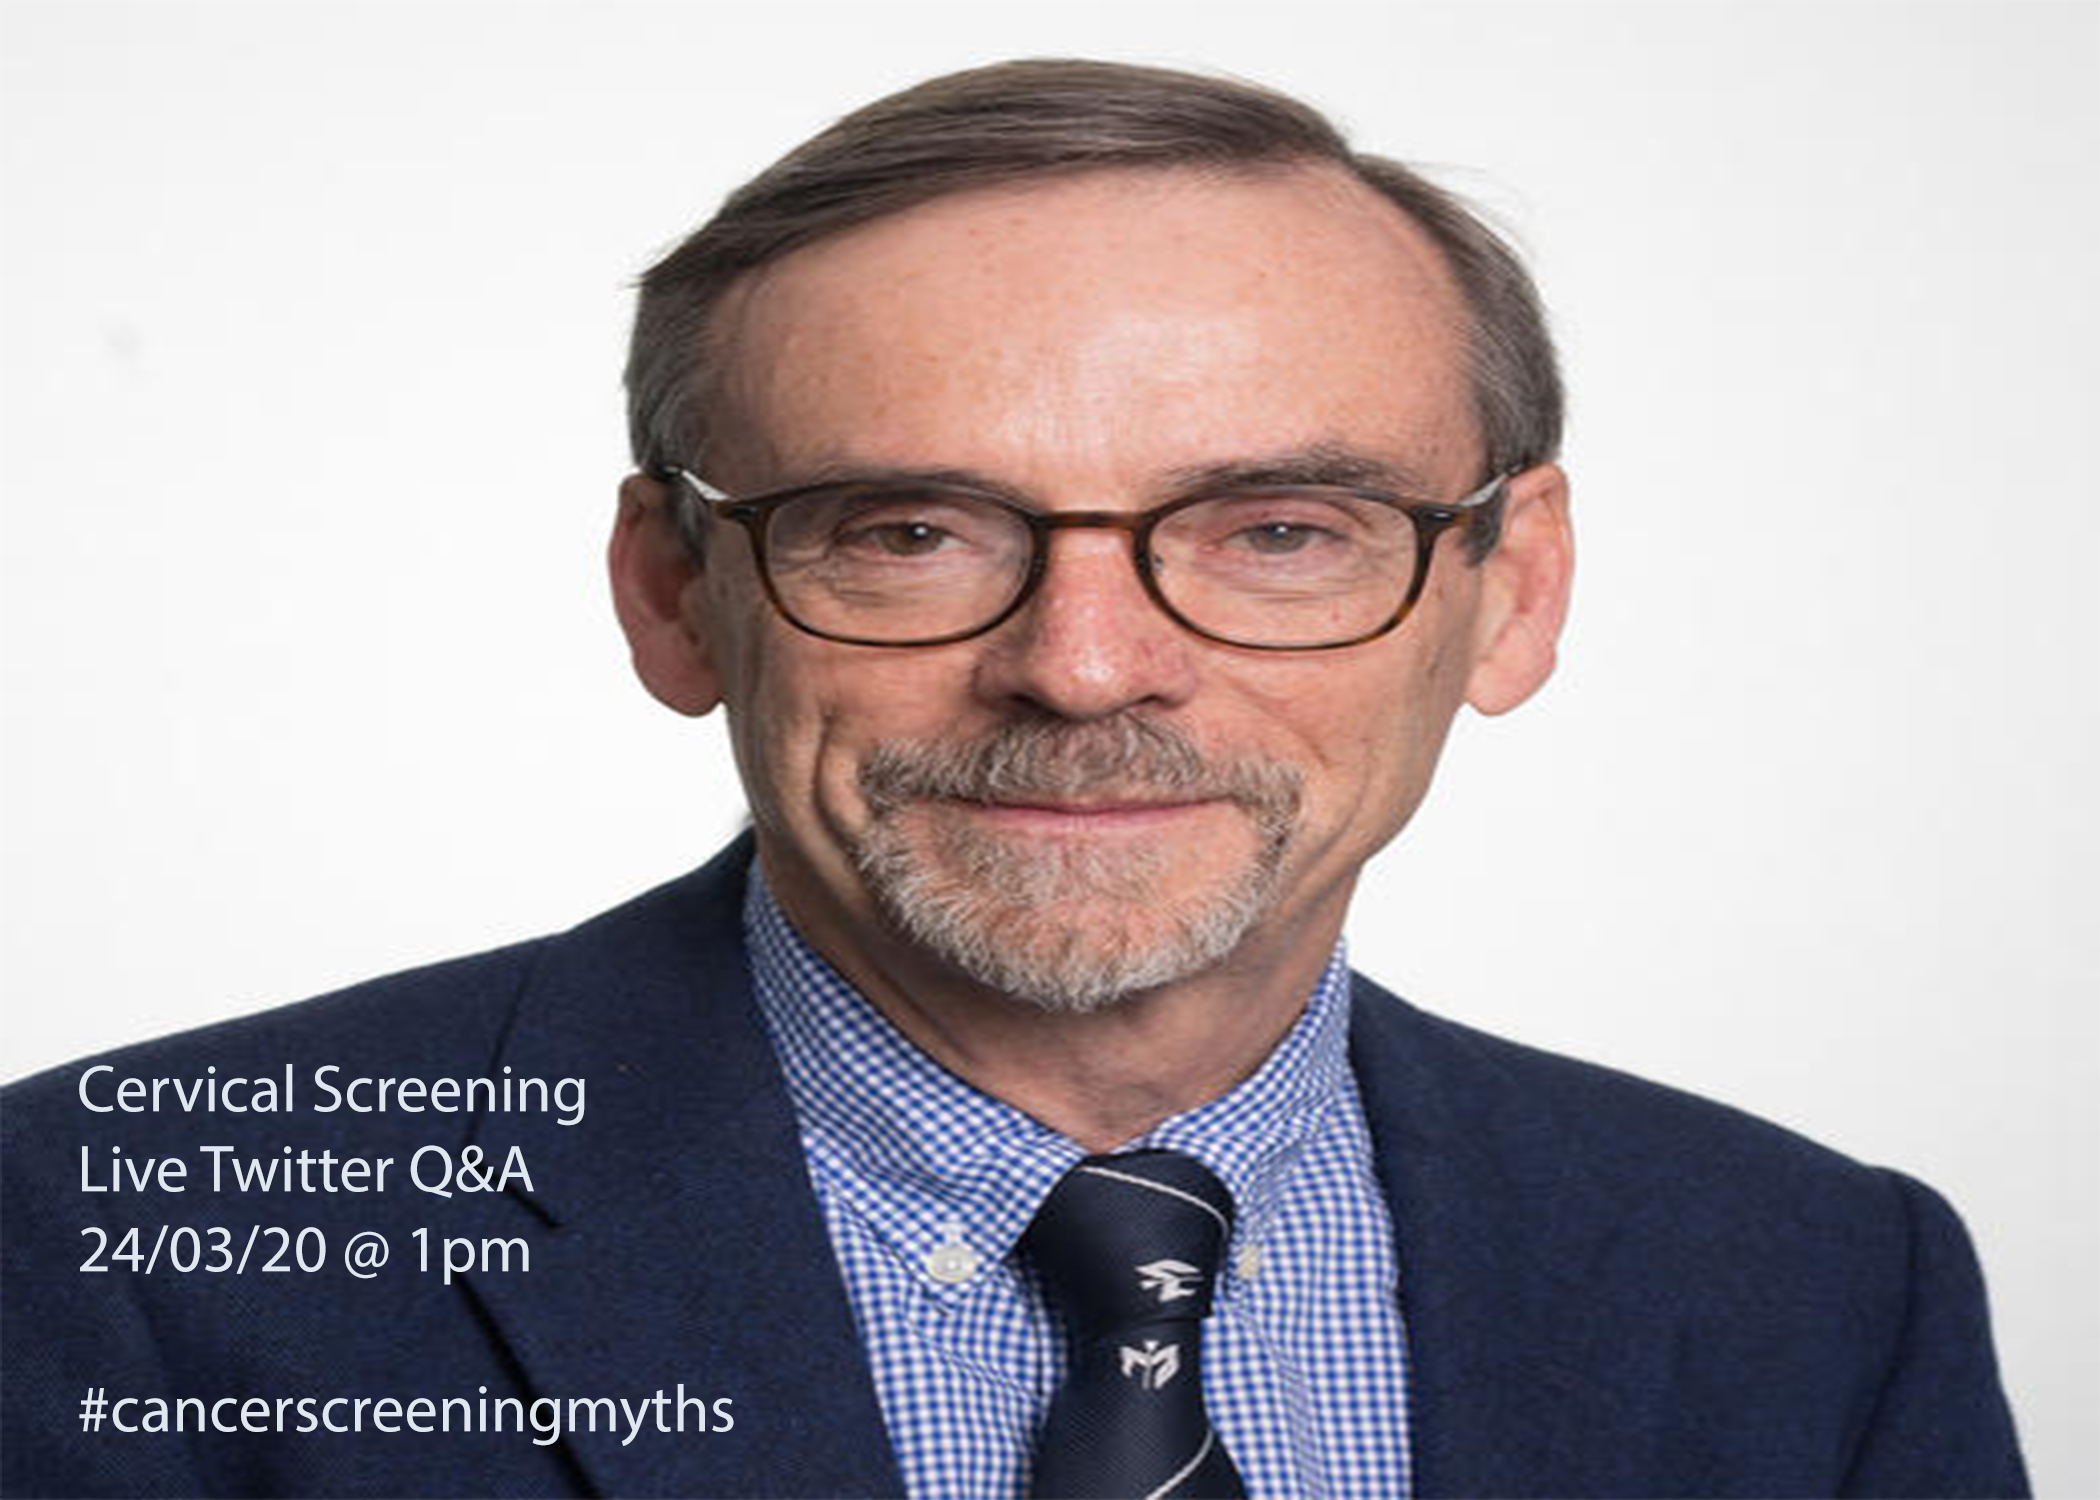 Live Twitter Q&A Cervical Cancer Screening